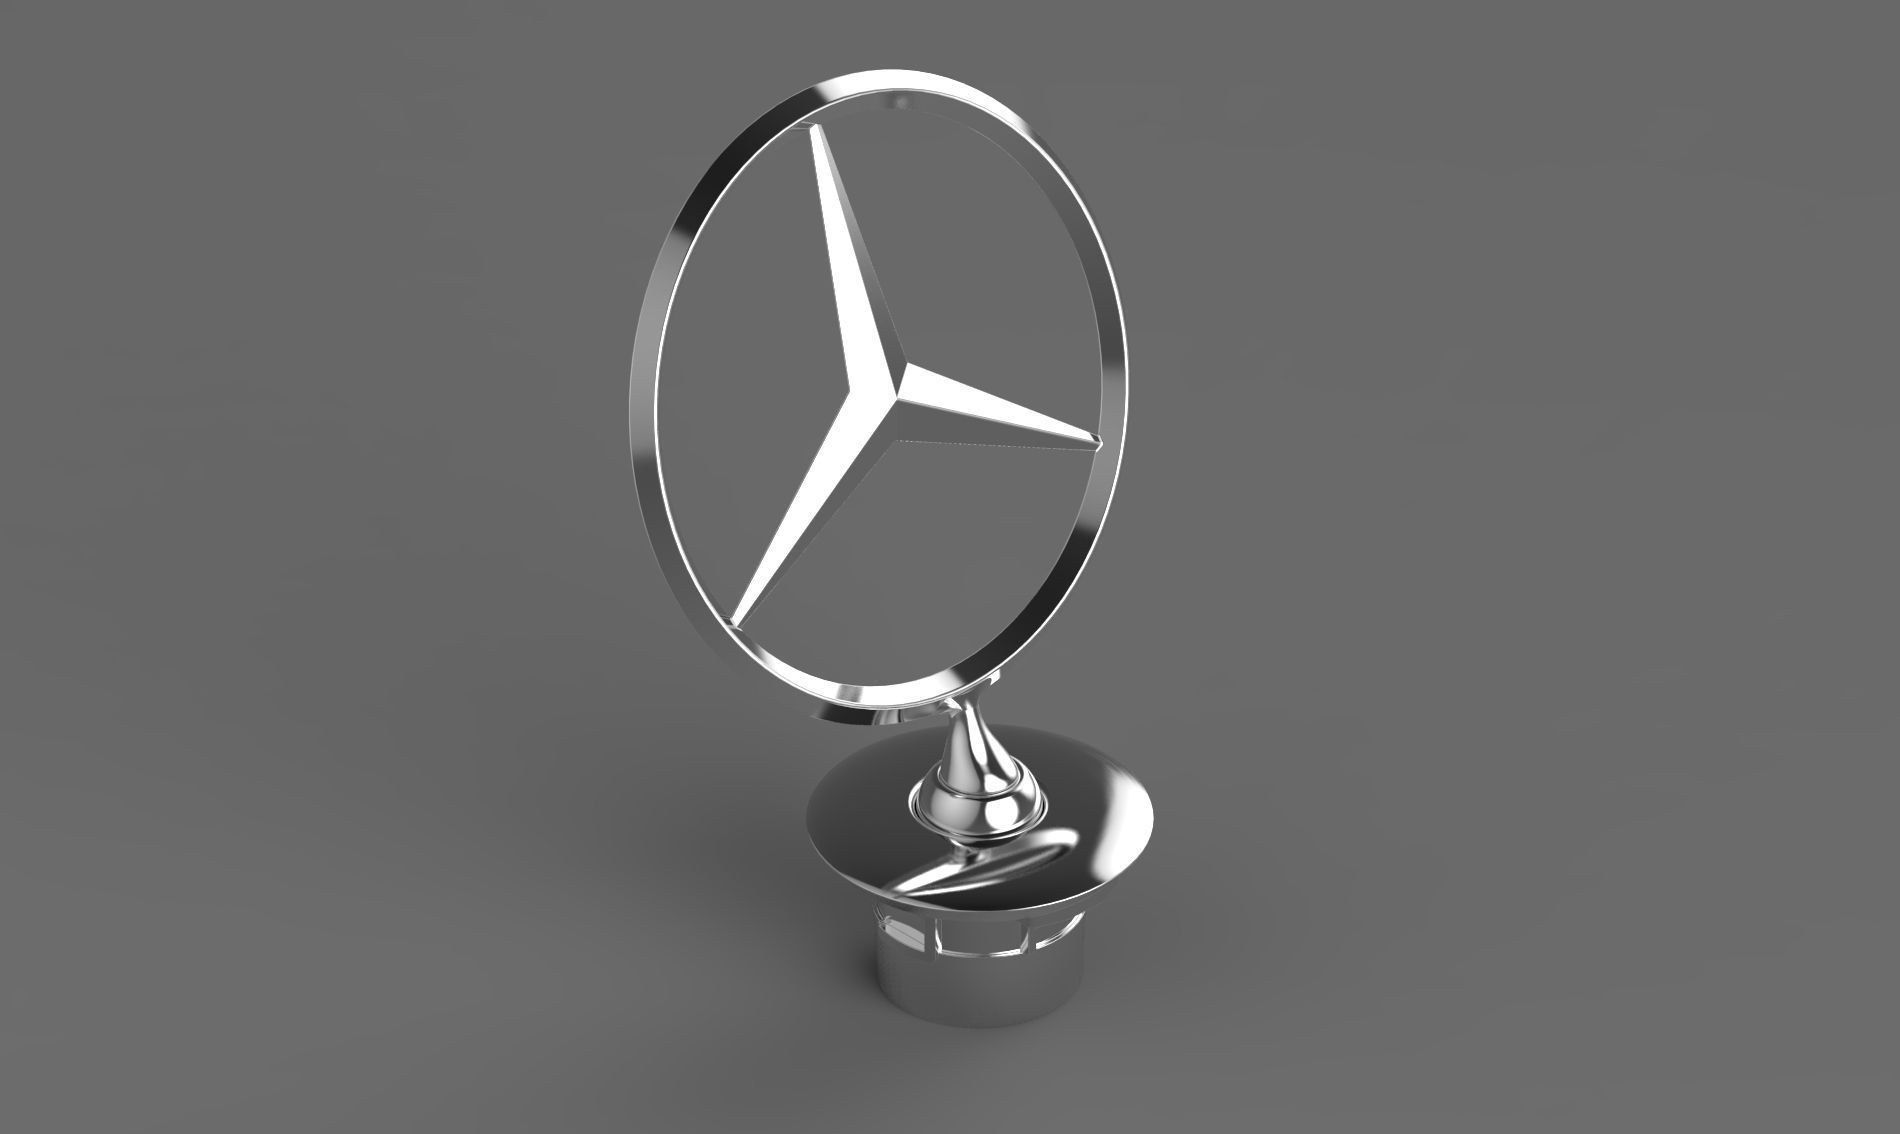 Mercedes benz logo wallpapers pictures images for Mercedes benz logo 3d